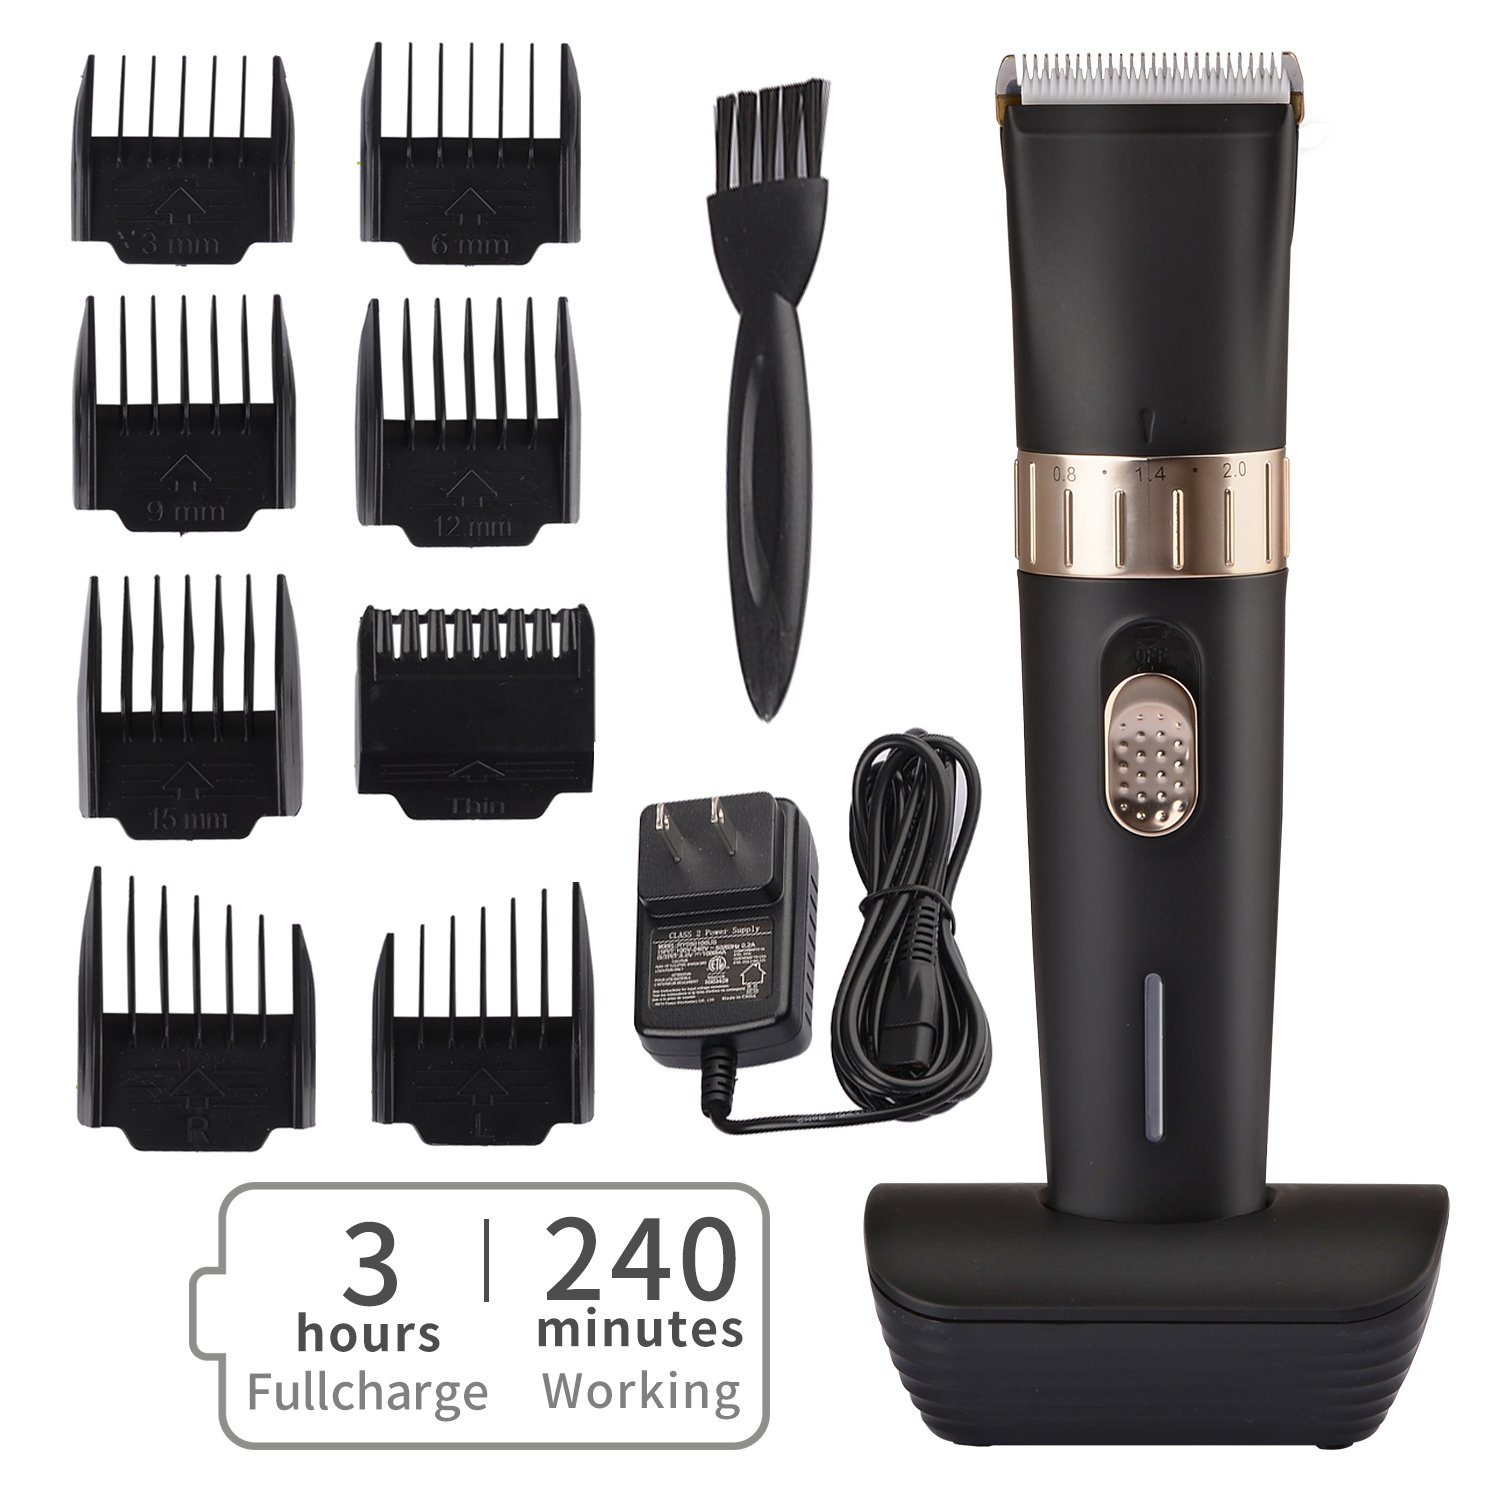 Powerful Clippers - Small & Lightweight - Makes a Great Beard Trimmer